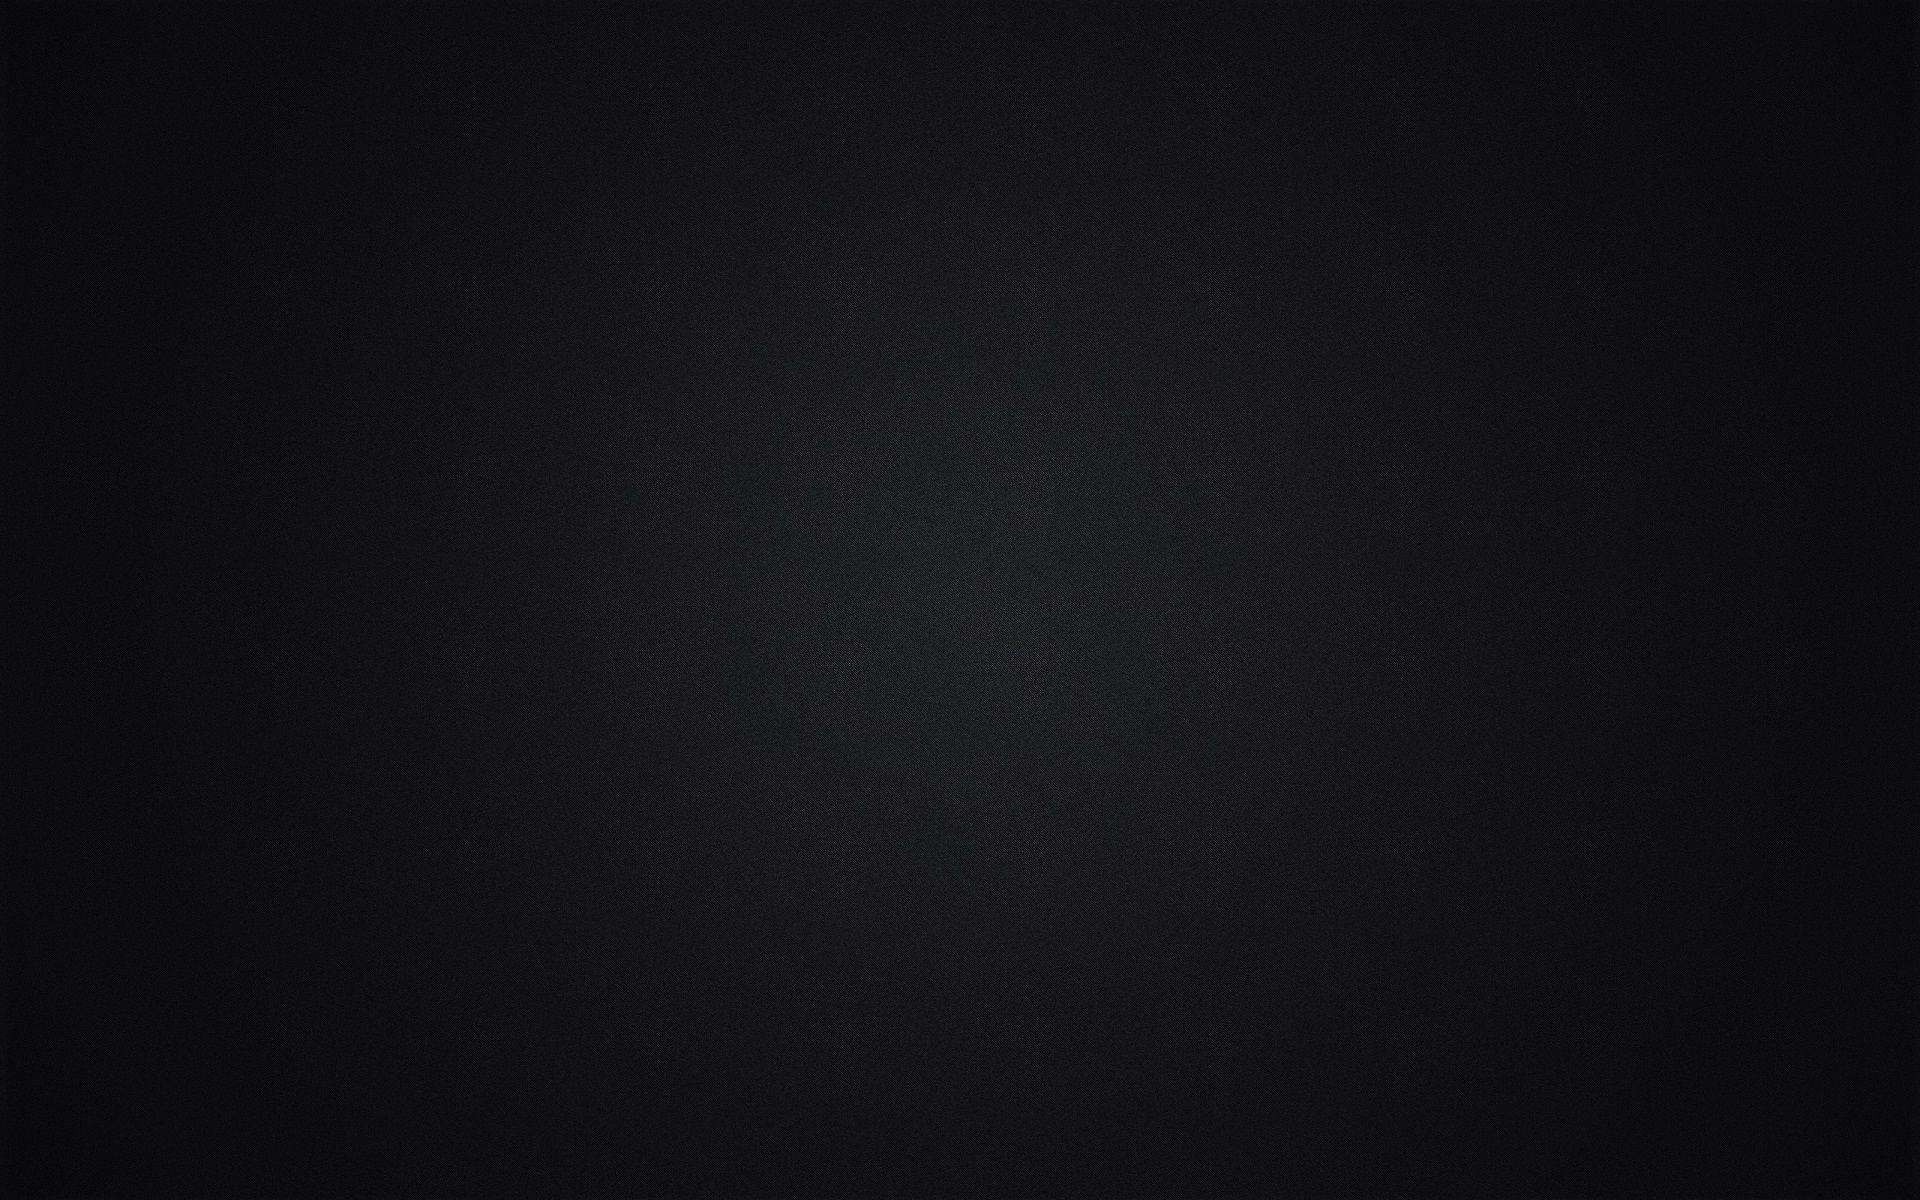 Wallpapers For > Plain Black Wallpapers Android